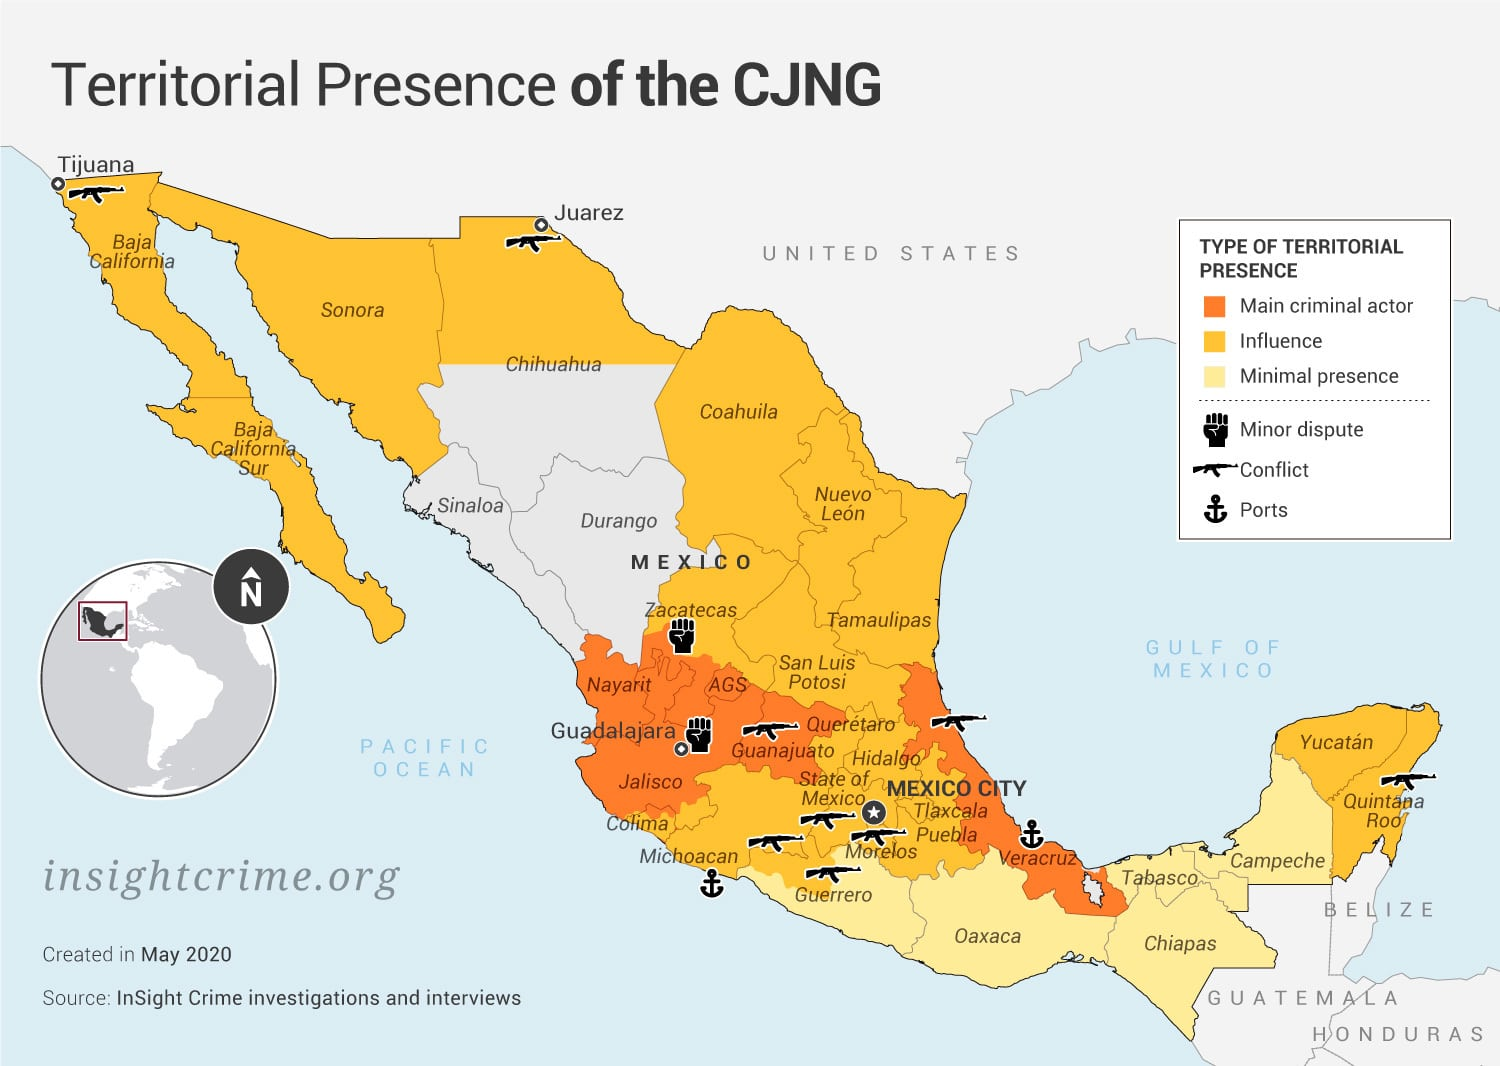 Mexico_Territorial-Presence-of-the-CJNG_Map_InSight-Crime_27-05-2020.jpg